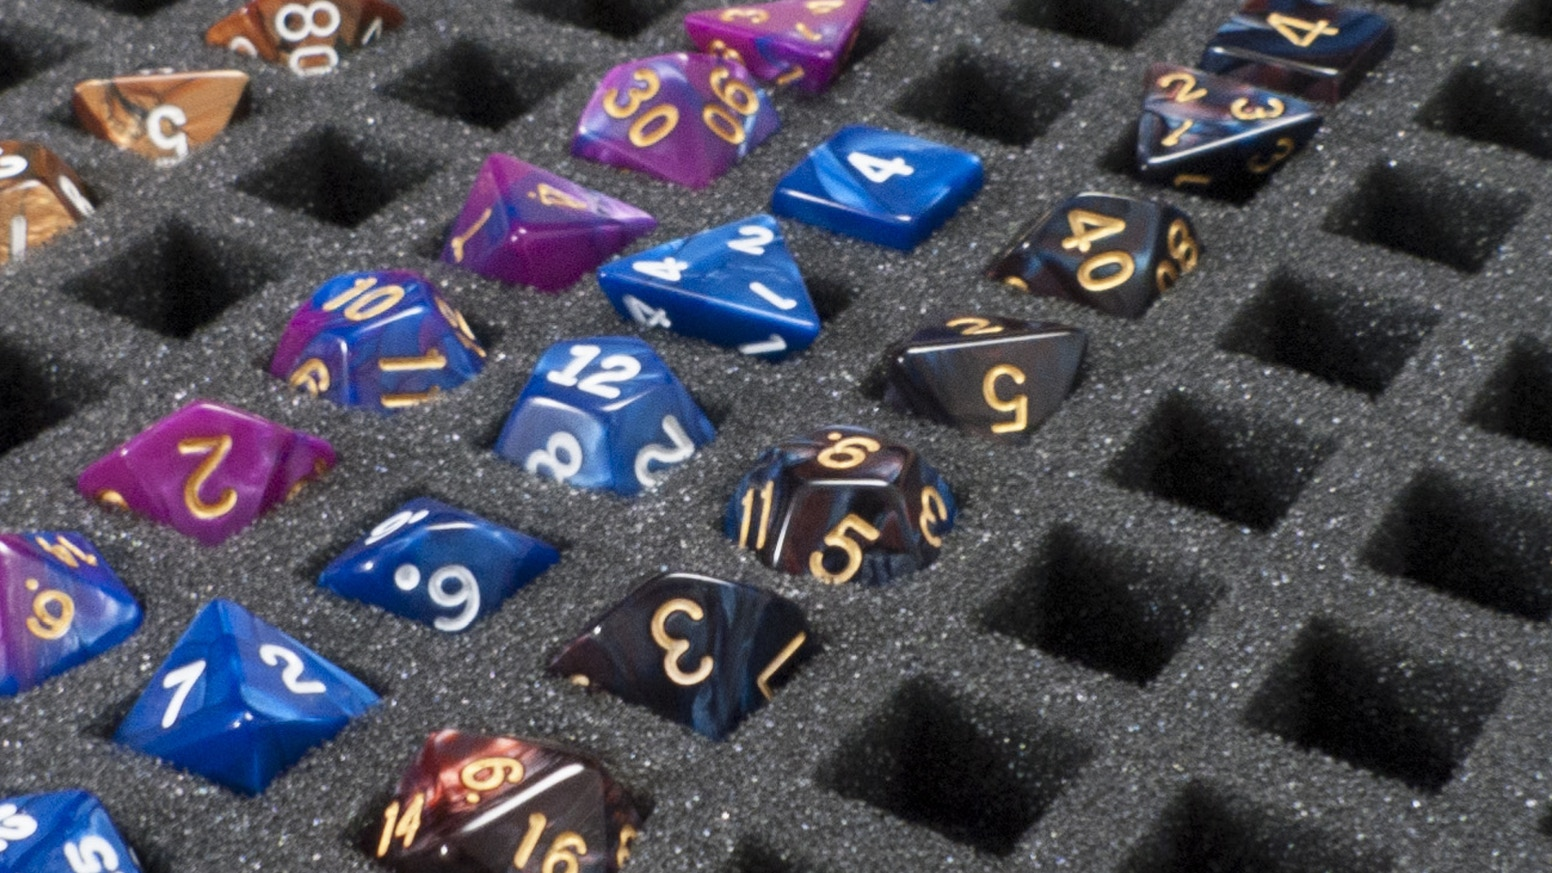 Storage container for Standard size 16mm Dice like those used in D-day Dice and Dungeons & Dragons.